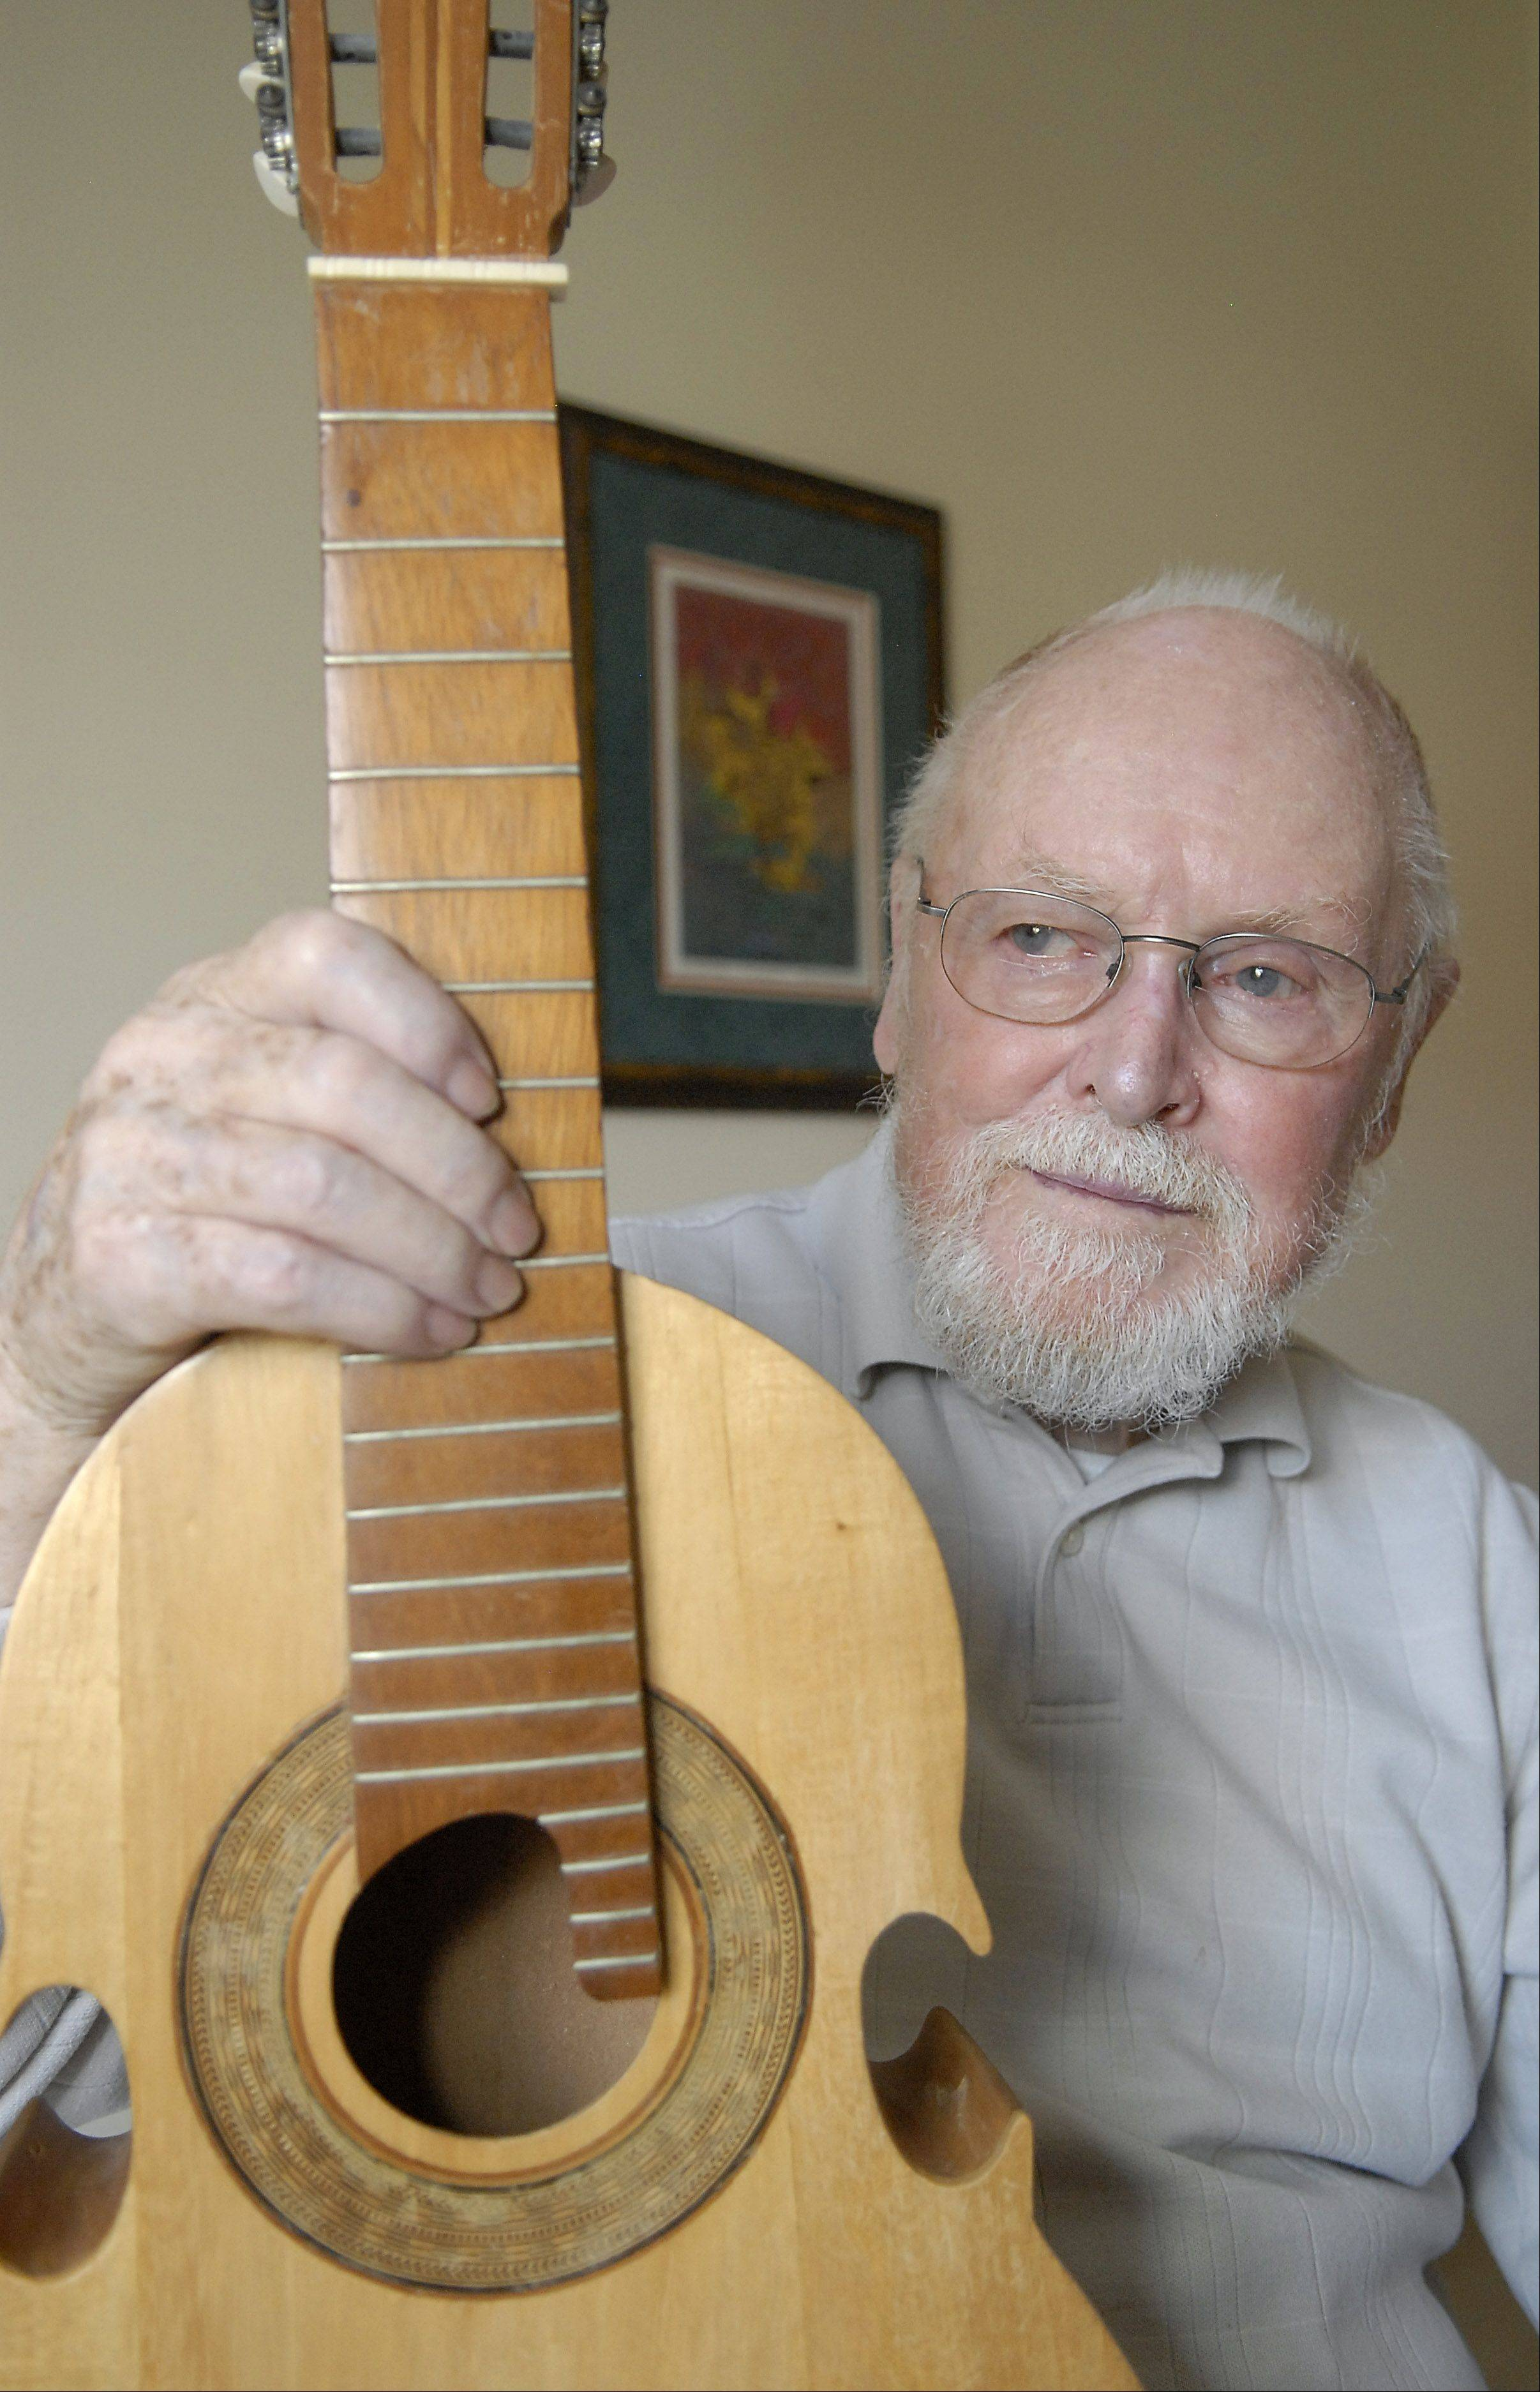 Ken Page and his cuatro, which he bought in the late 60s. The Puerto Rican guitar is made from a single piece of wood. Page, 85, worked for Sears throughout Latin America. He also used to play the guitar and dulcimer.